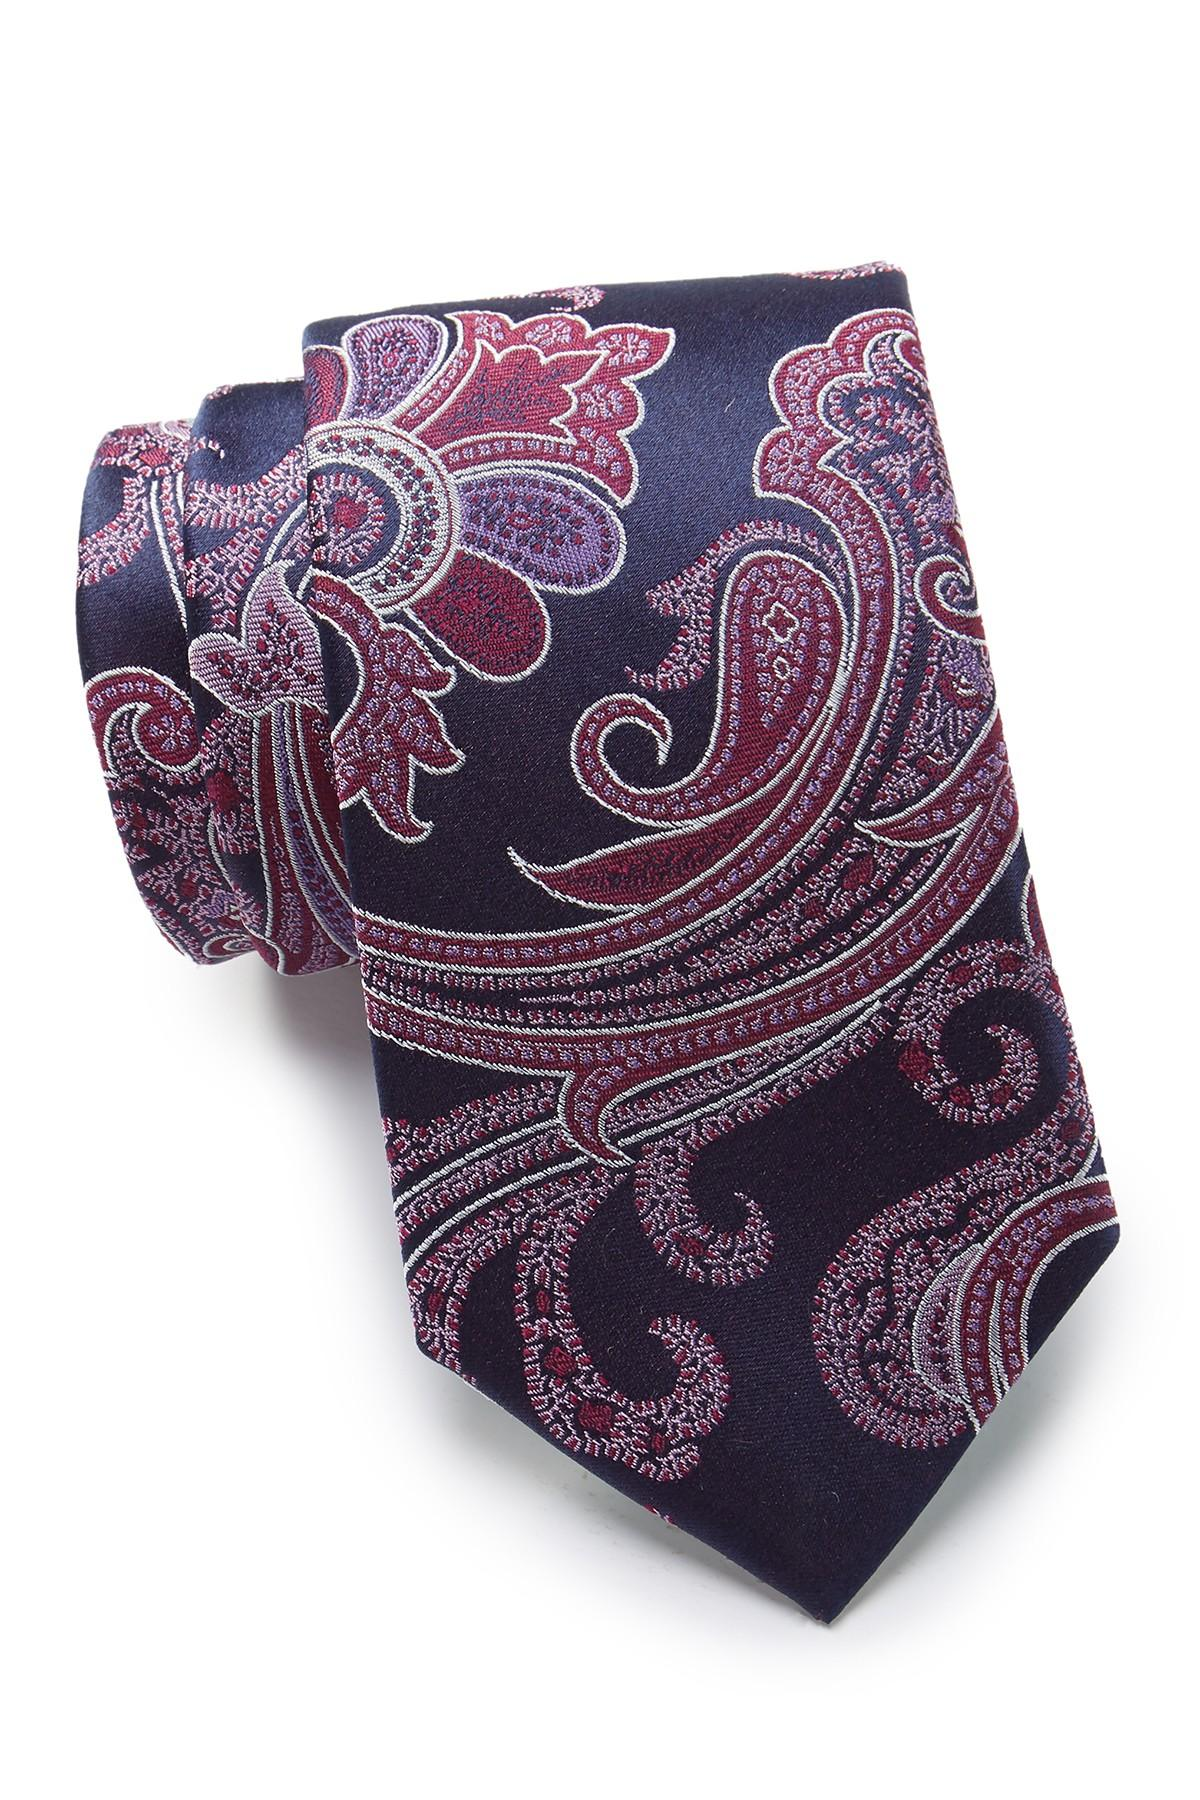 97ed2fc9f Lyst - Ted Baker Silk Luxury Satin Paisley Tie in Pink for Men